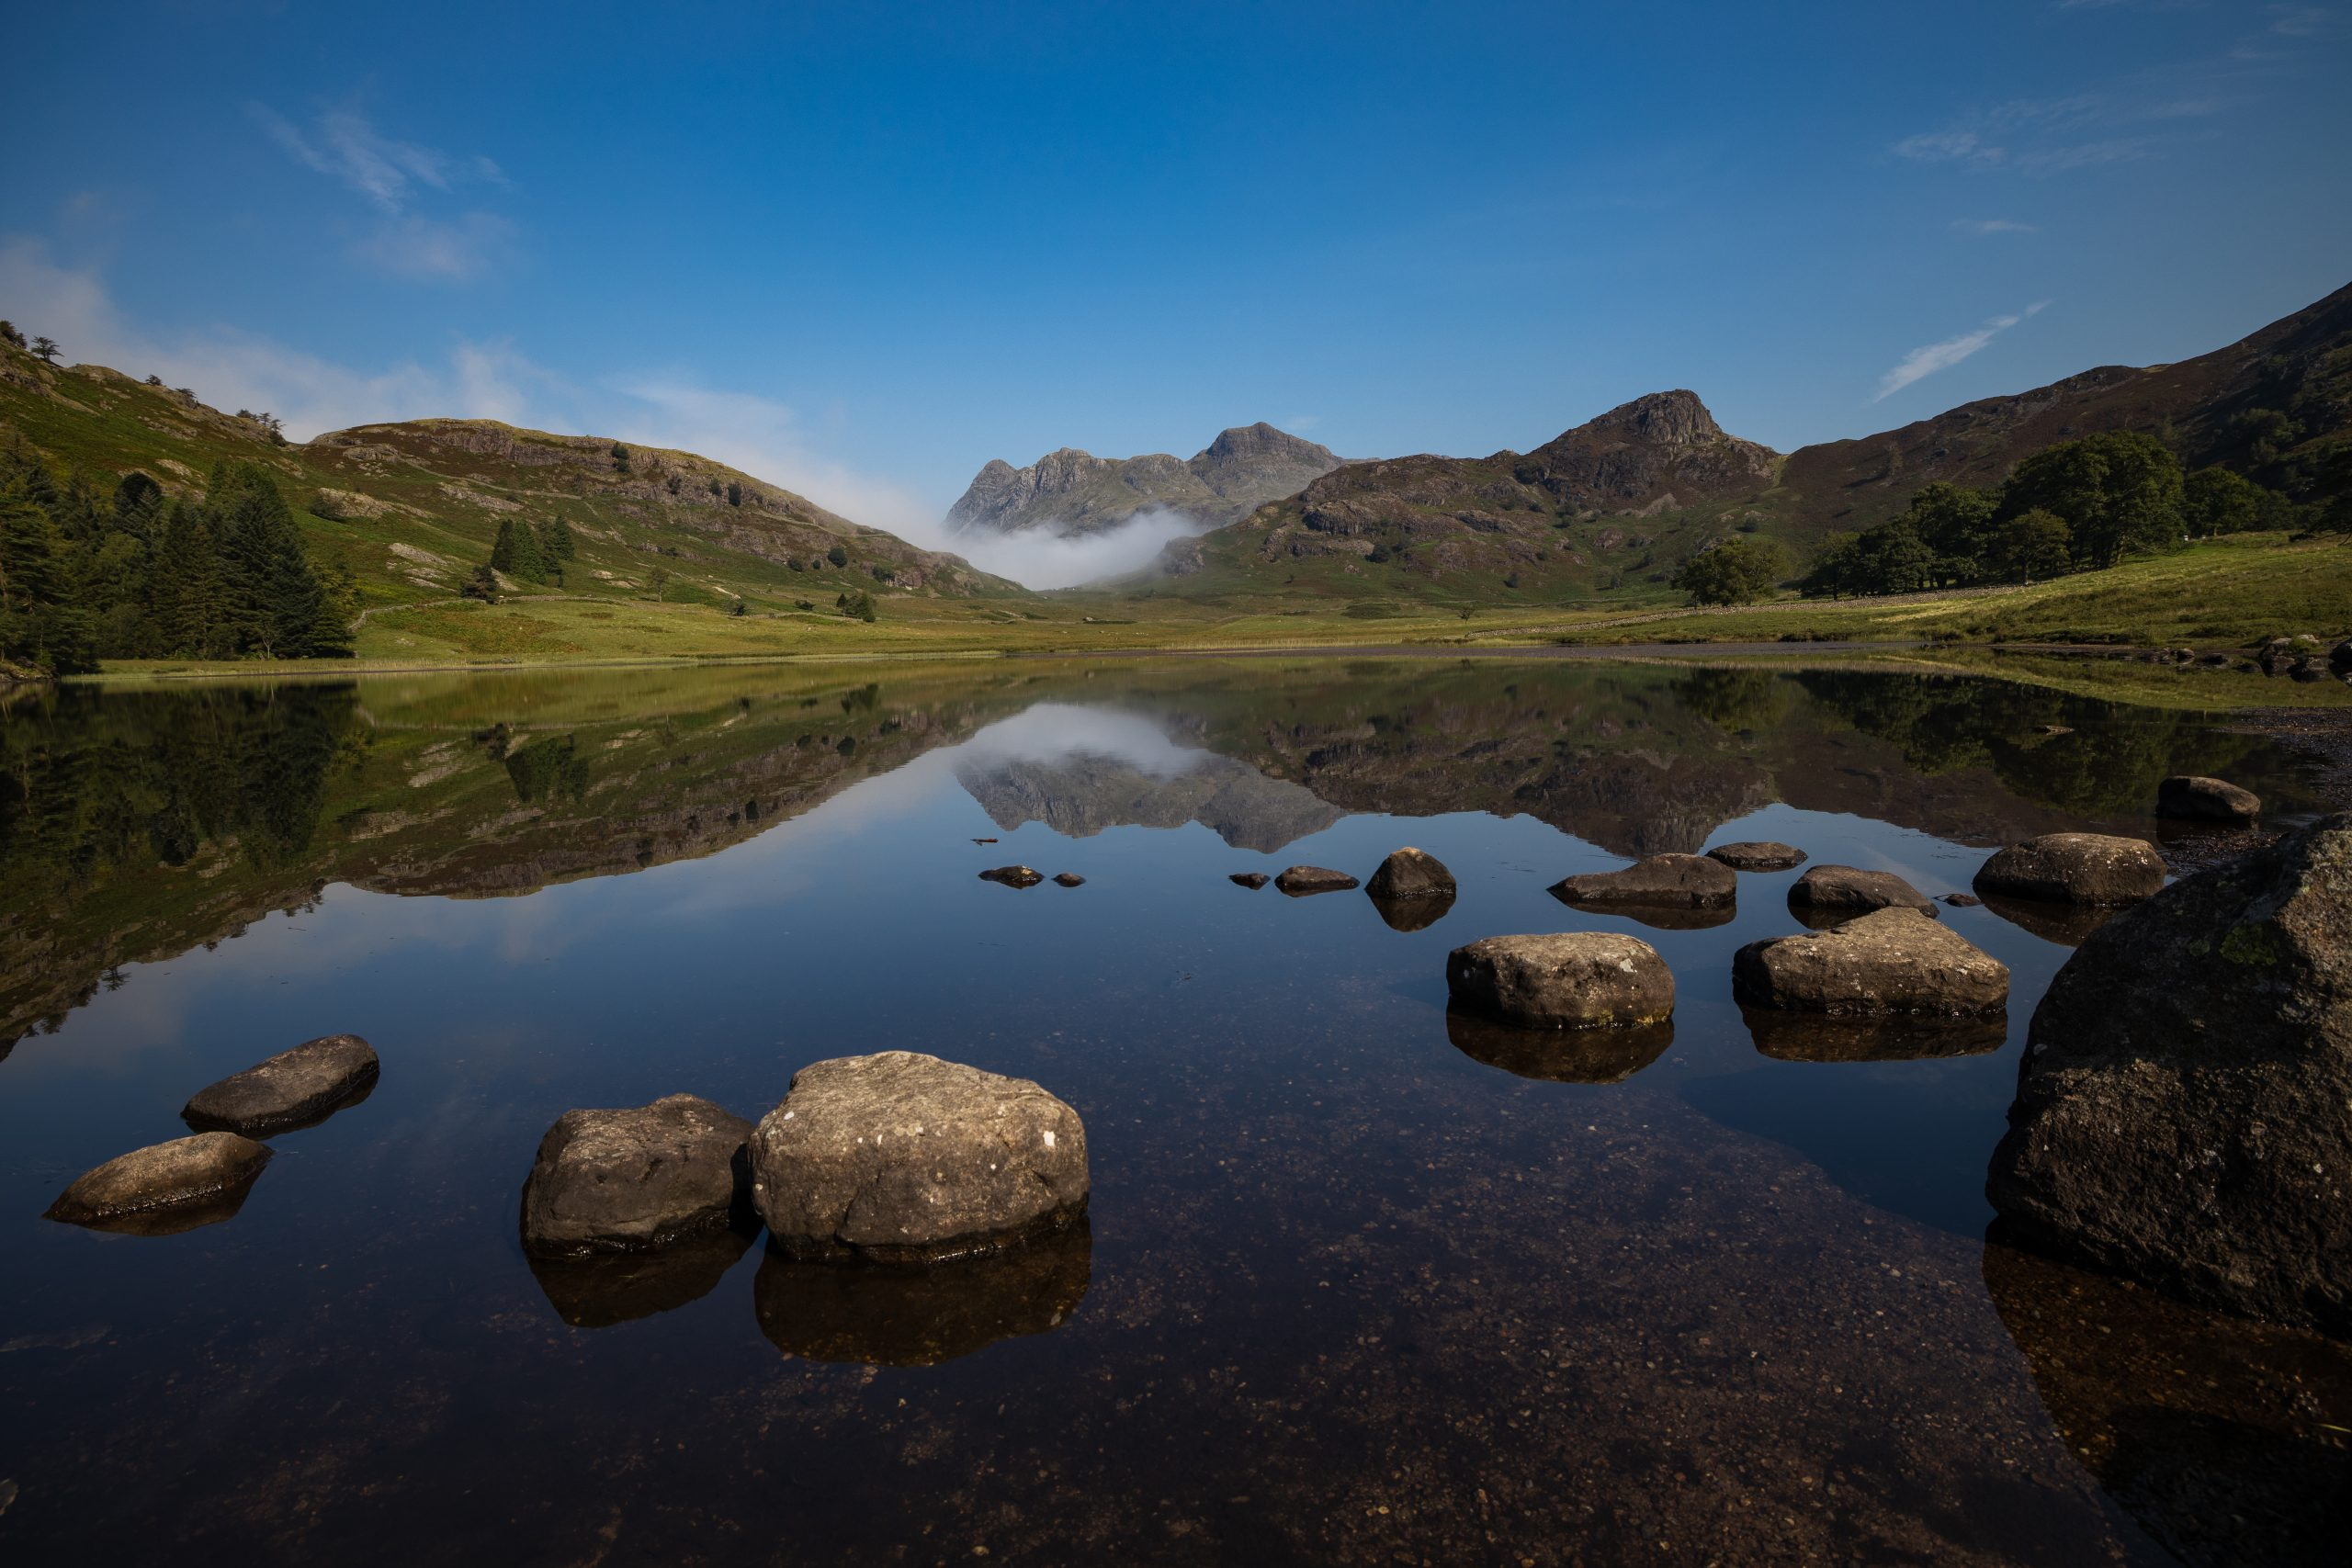 The Langdale Pikes reflected in Blea Tarn in the Lake District